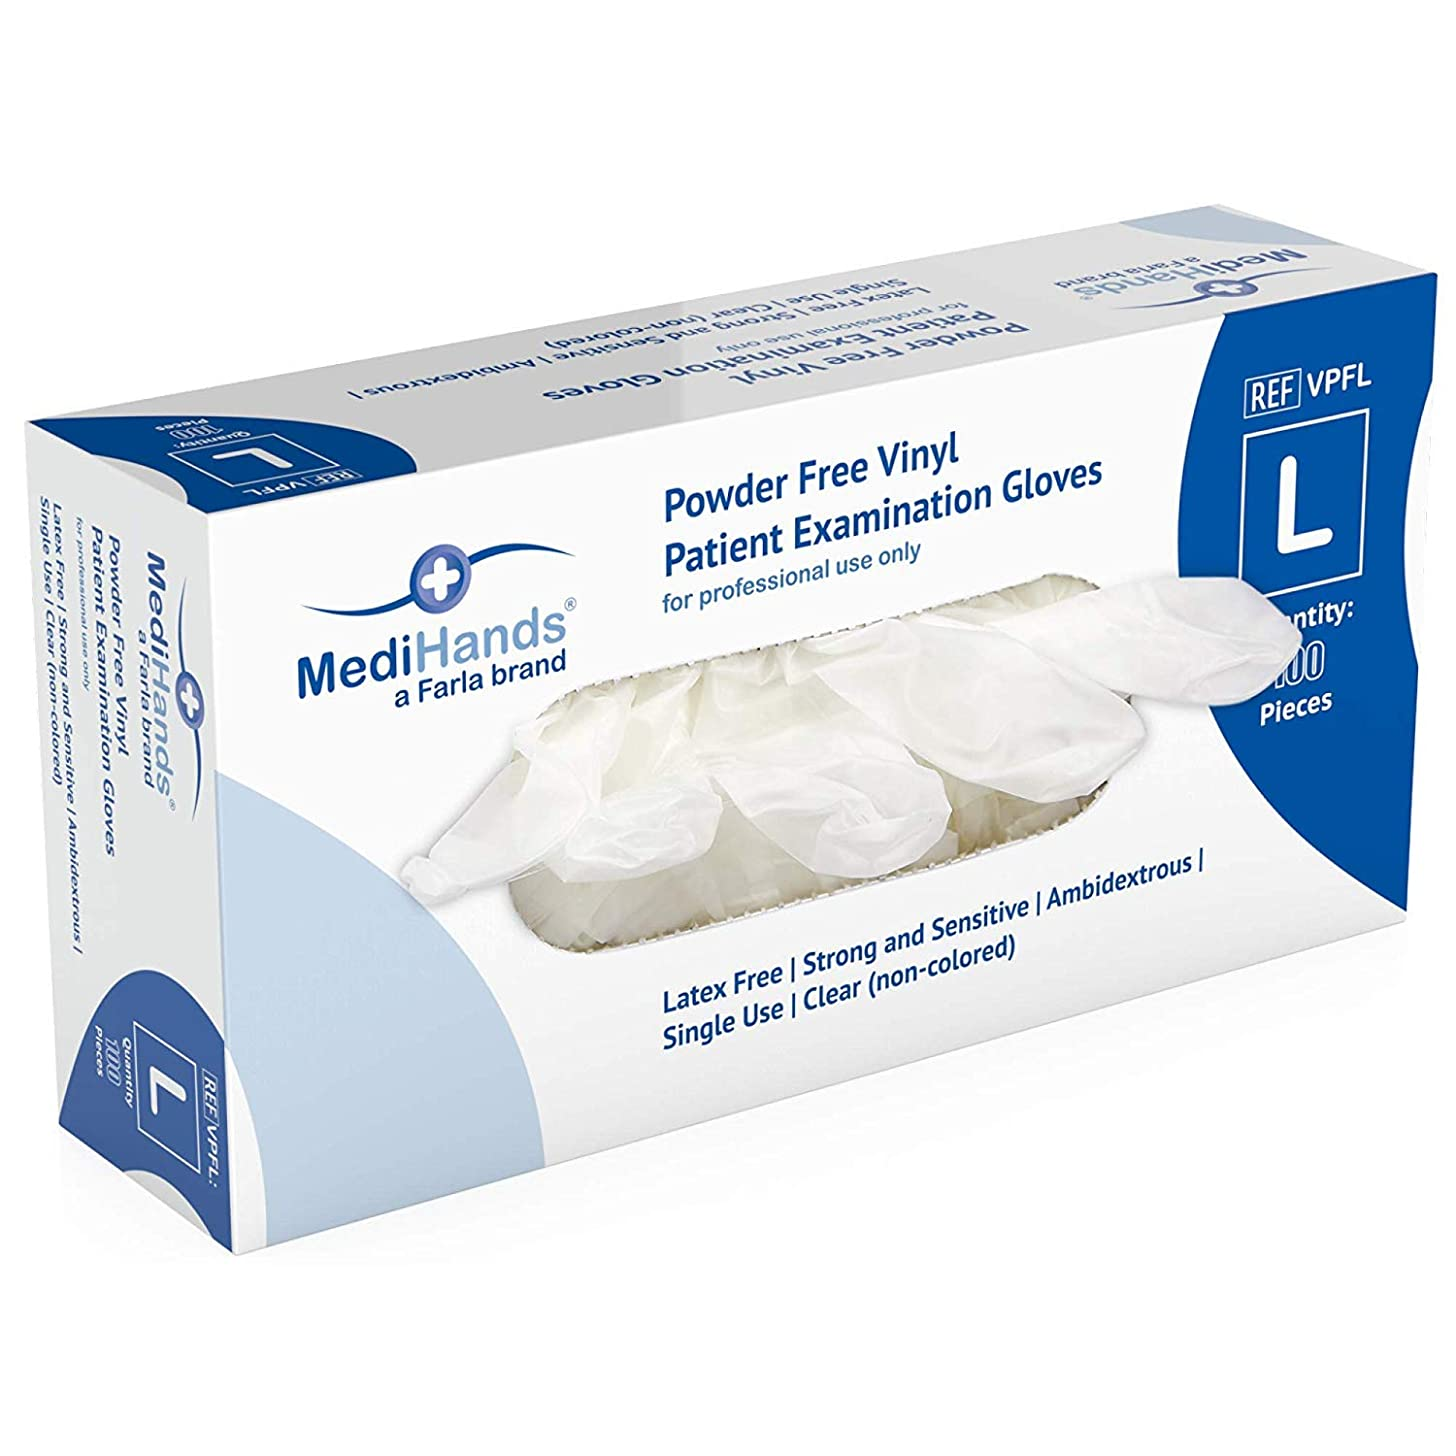 Heavy Duty Disposable Vinyl Gloves, 100 Count, Large – Powder Free, Ambidextrous, Super Comfortable, Extra Strong, Durable and Stretchy, Medical, Food and Multi Use – By MediHands